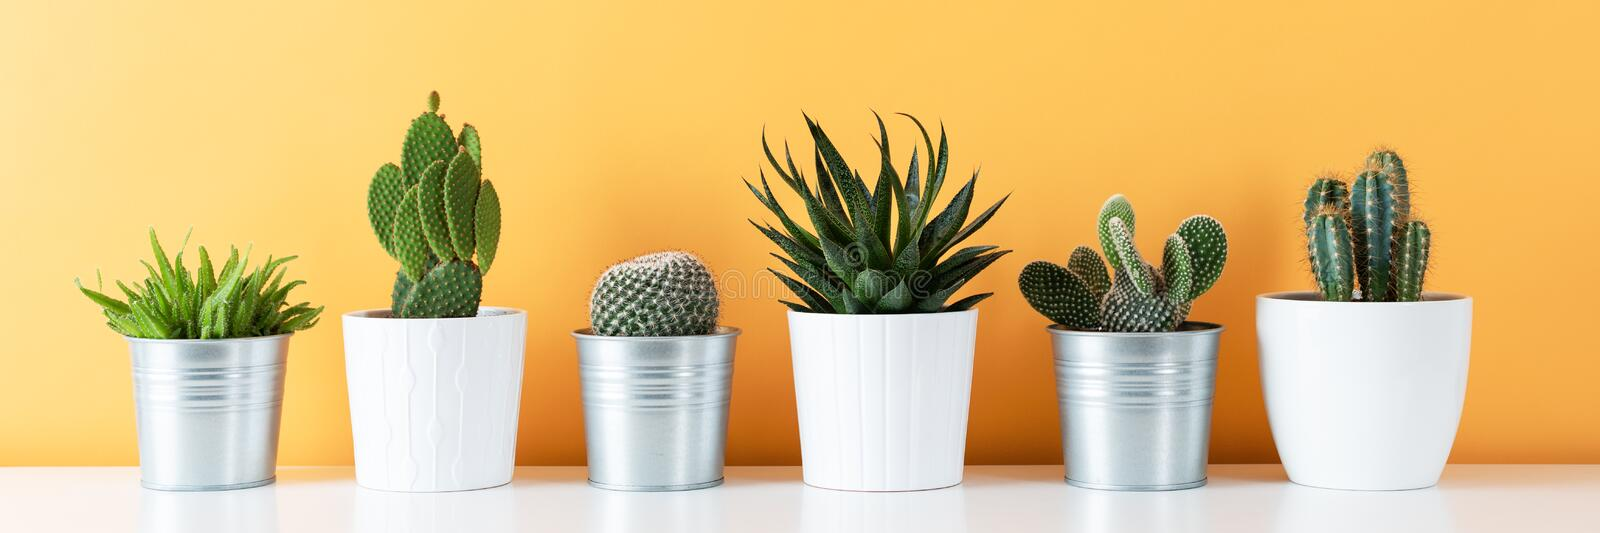 Collection of various potted cactus and succulent plants on white shelf against warm yellow colored wall. House plants banner. stock image